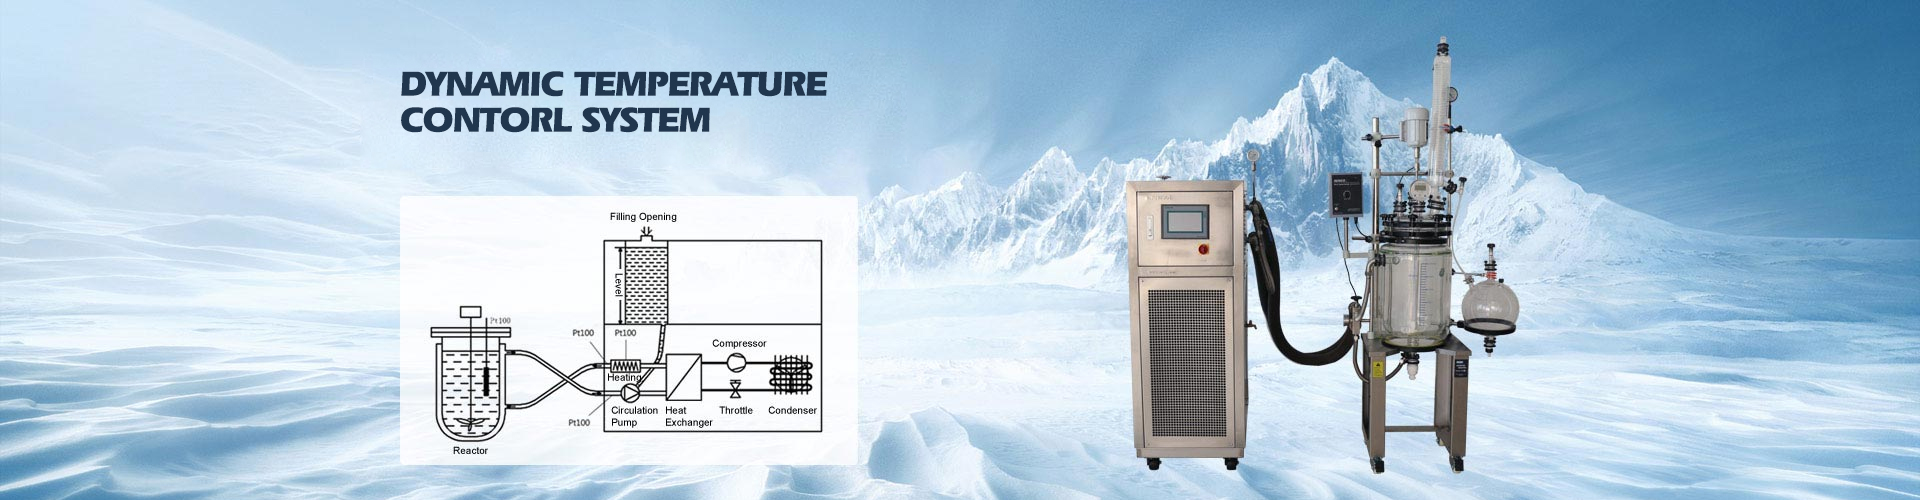 DYNAMIC TEMPERATURE CONTROL SYSTEM